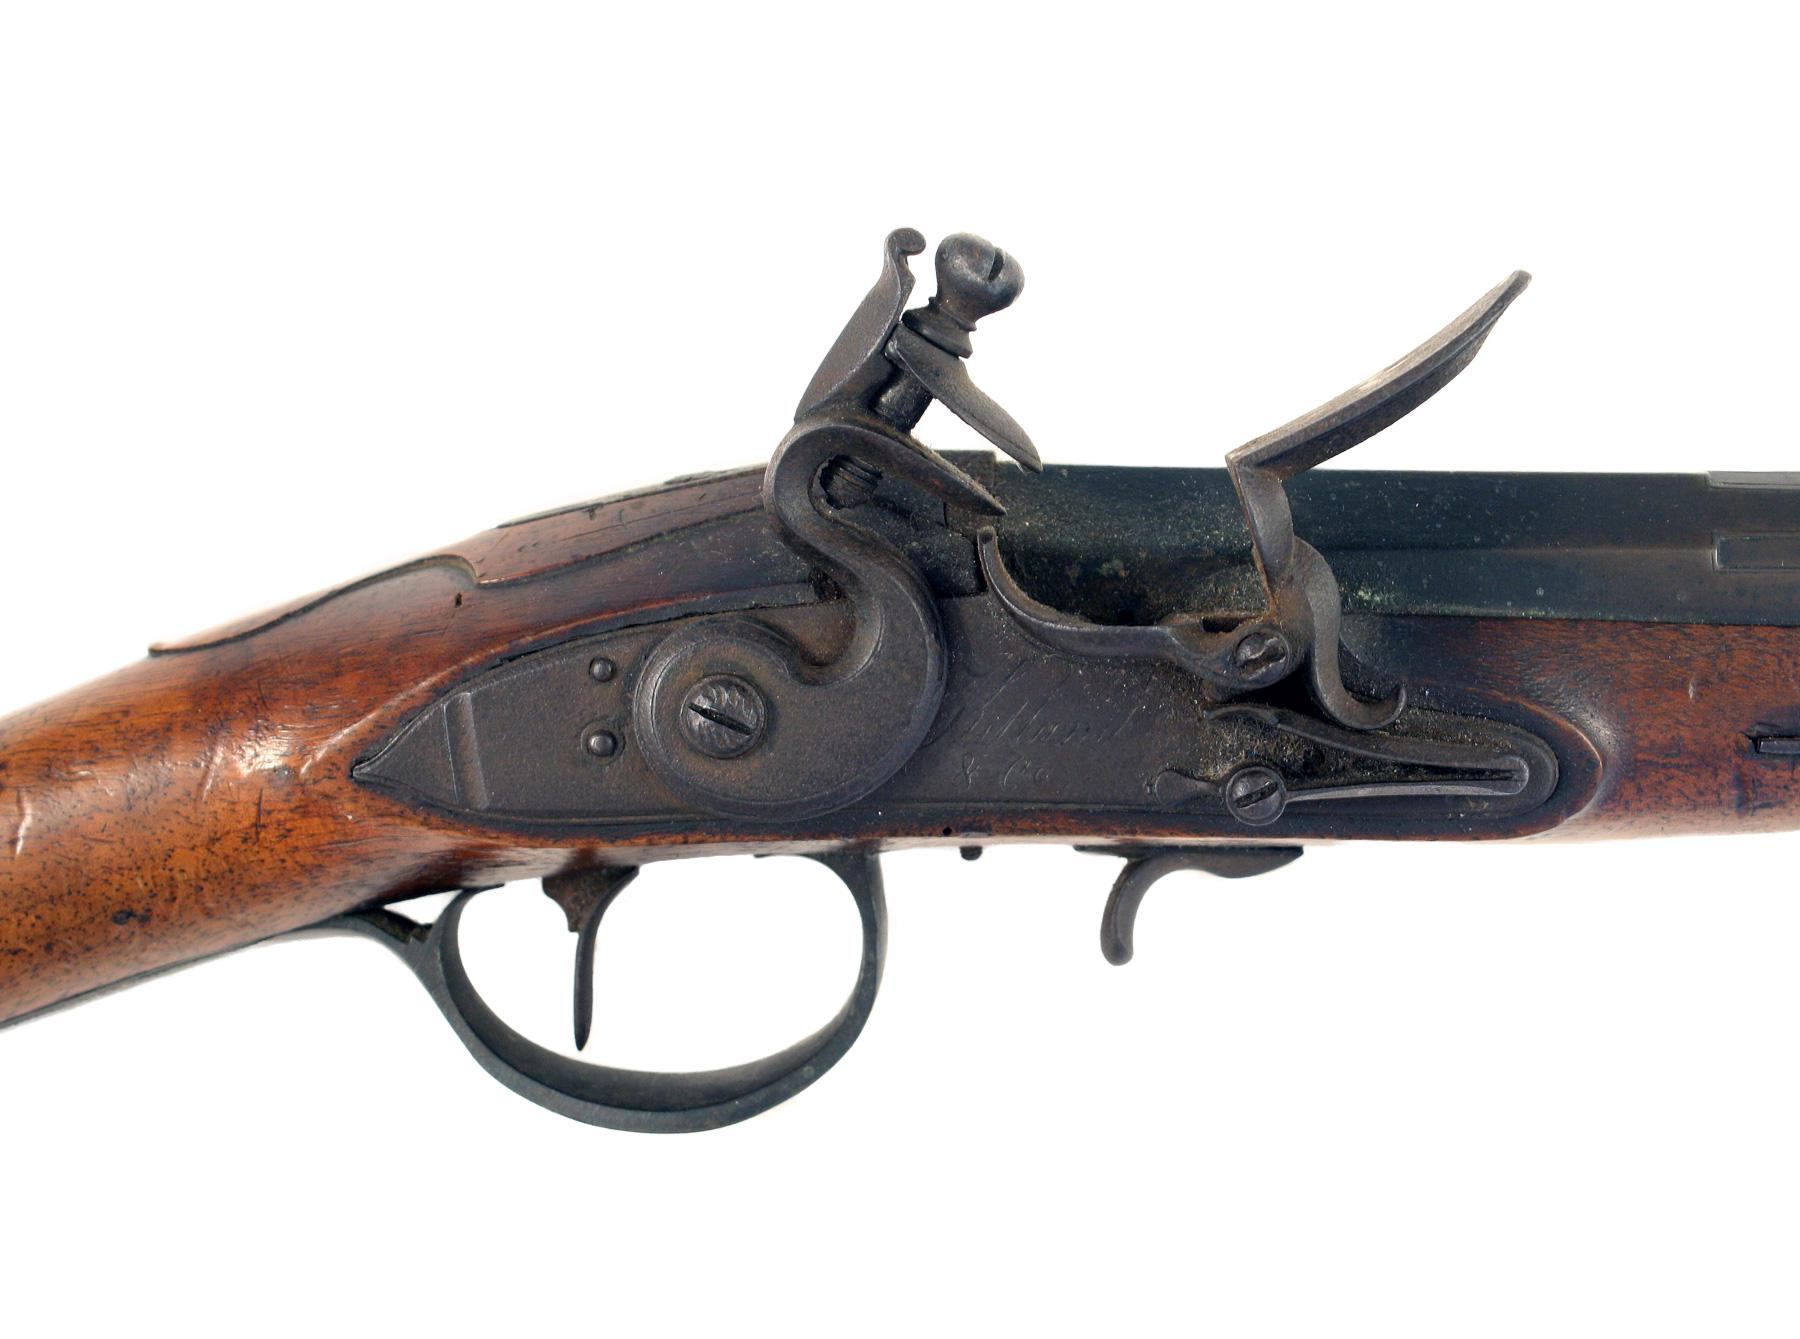 An Untouched Flintlock Blunderbuss